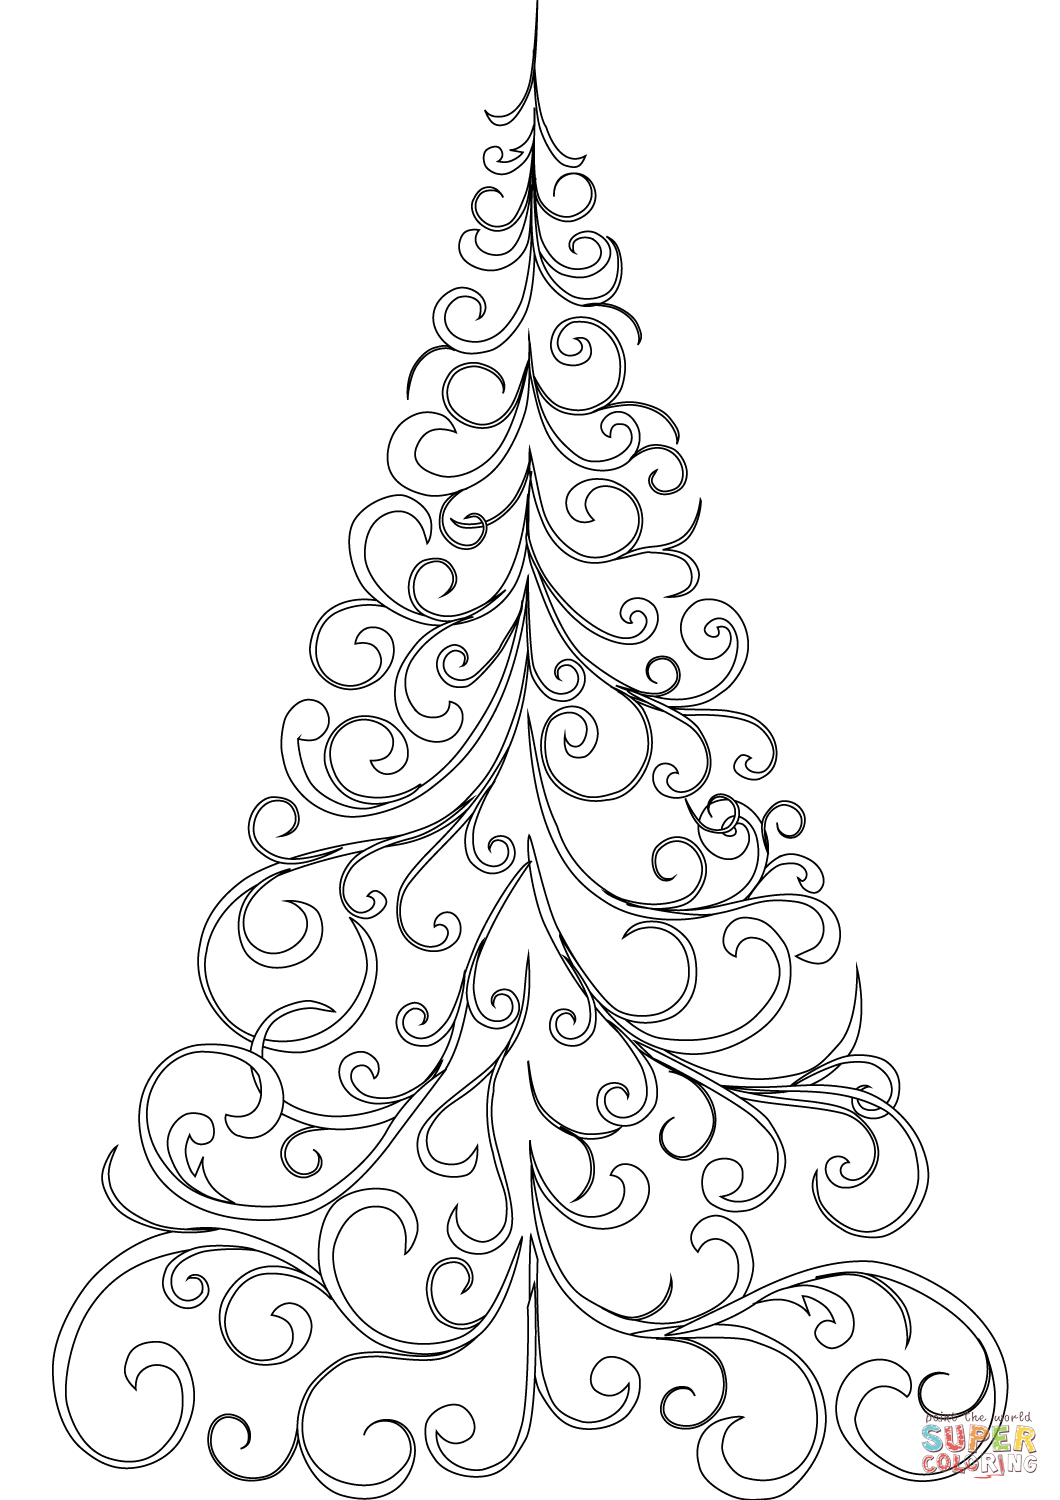 Swirly Christmas Tree Coloring Page From Christmas Tree